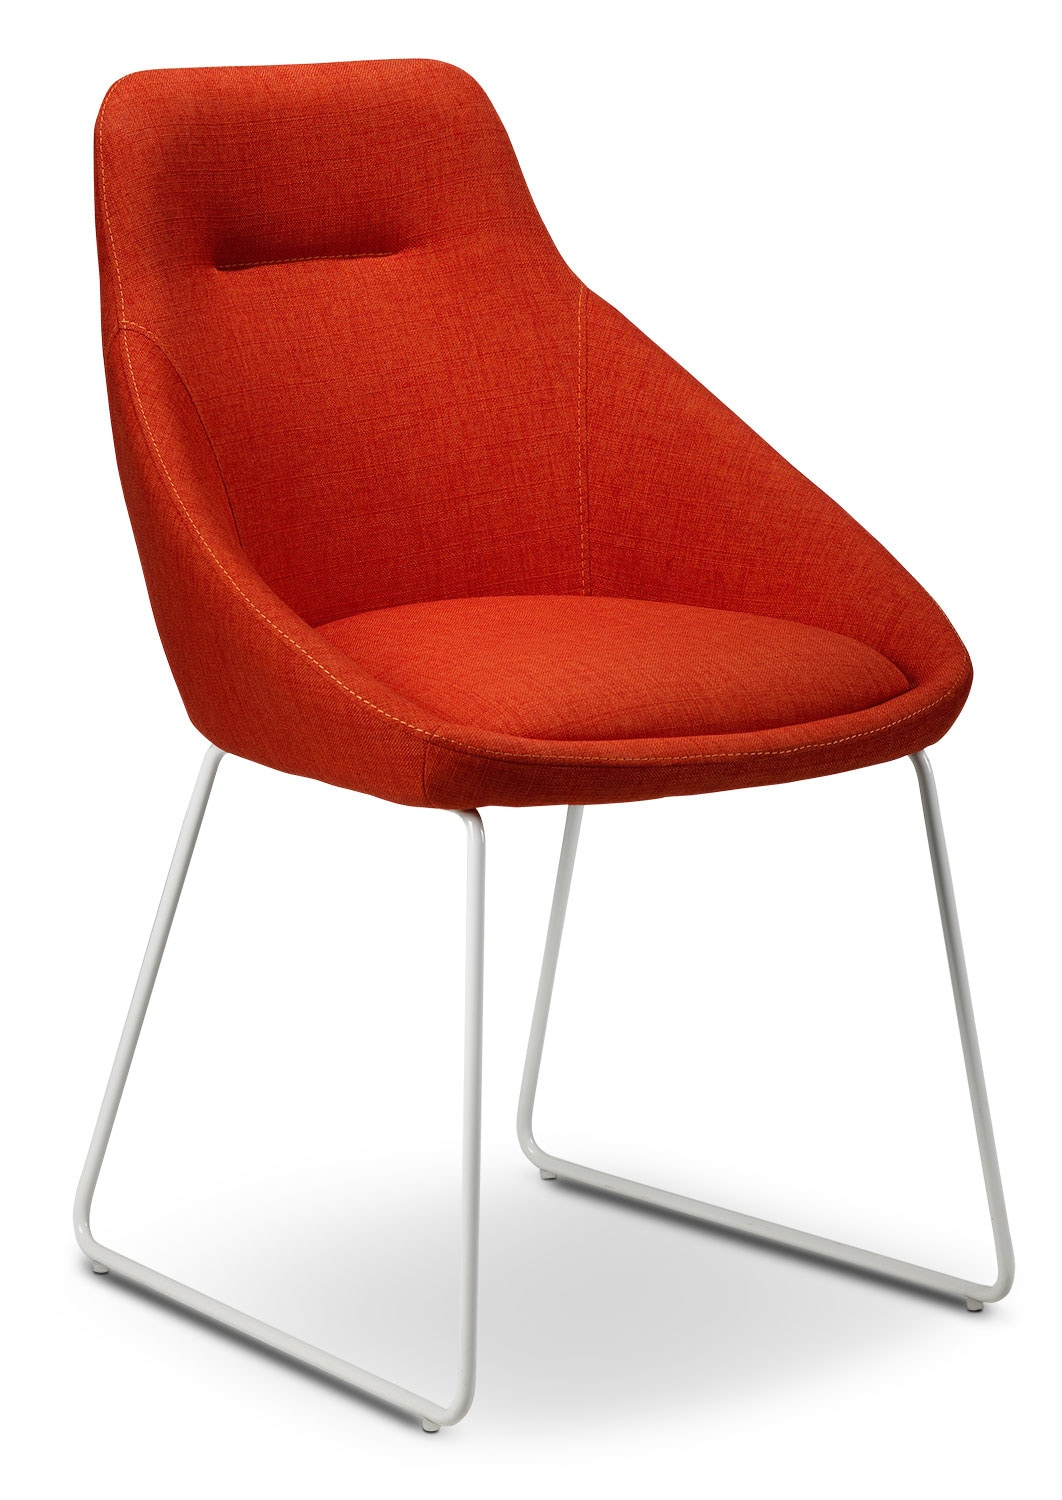 Casual Dining Room Furniture - Sunshine Chair - Poppy Red